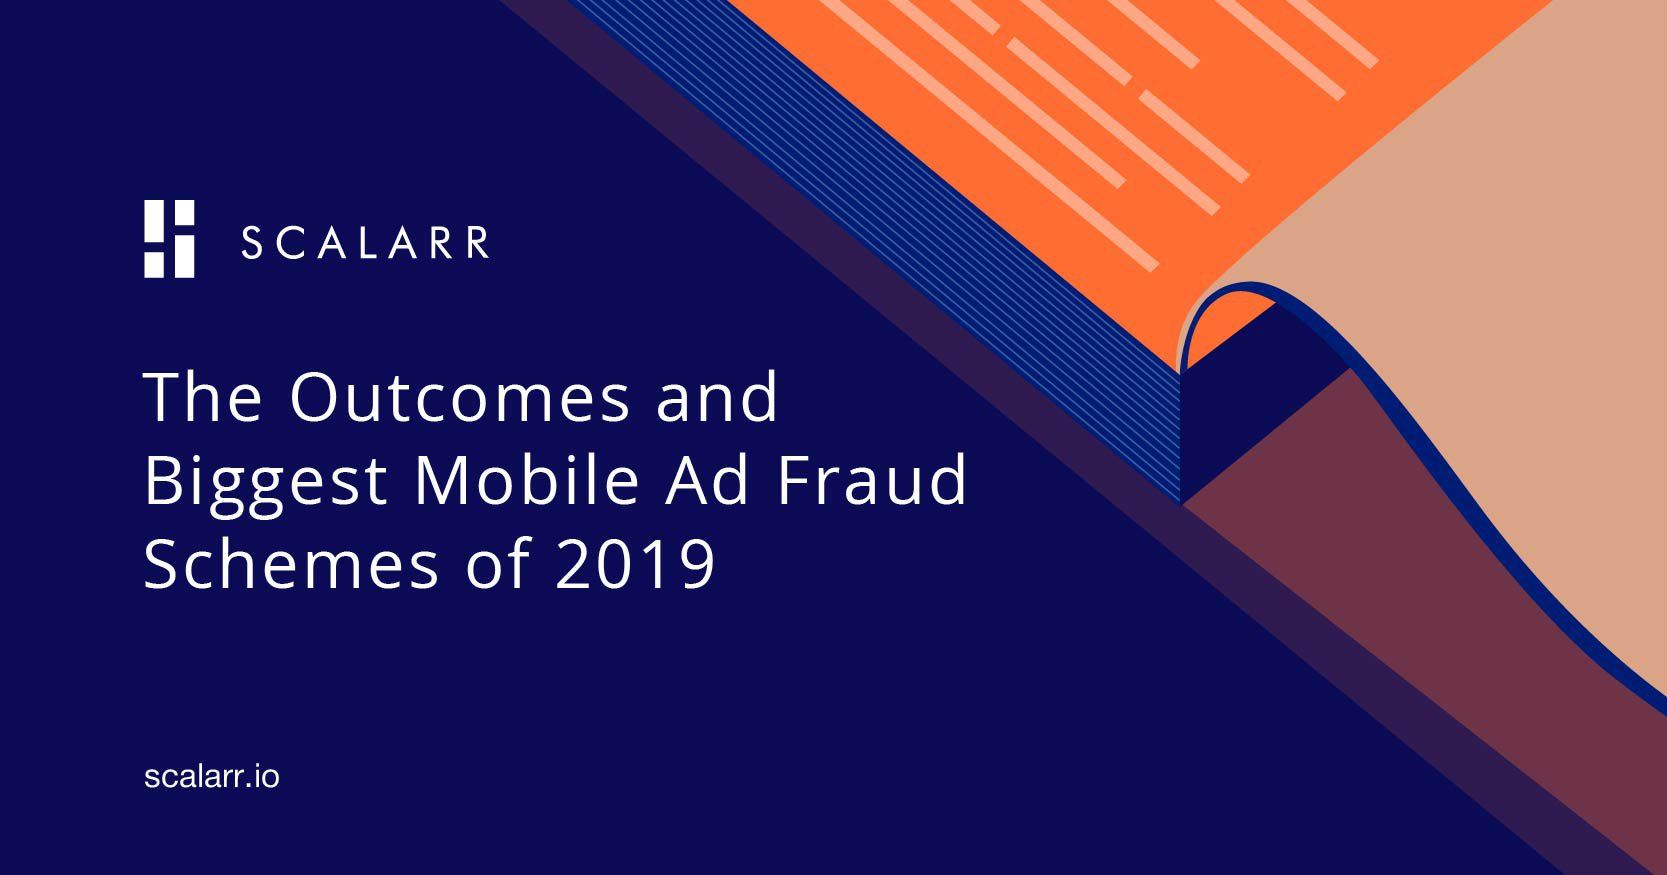 The Outcomes and Biggest Mobile Ad Fraud Schemes of 2019